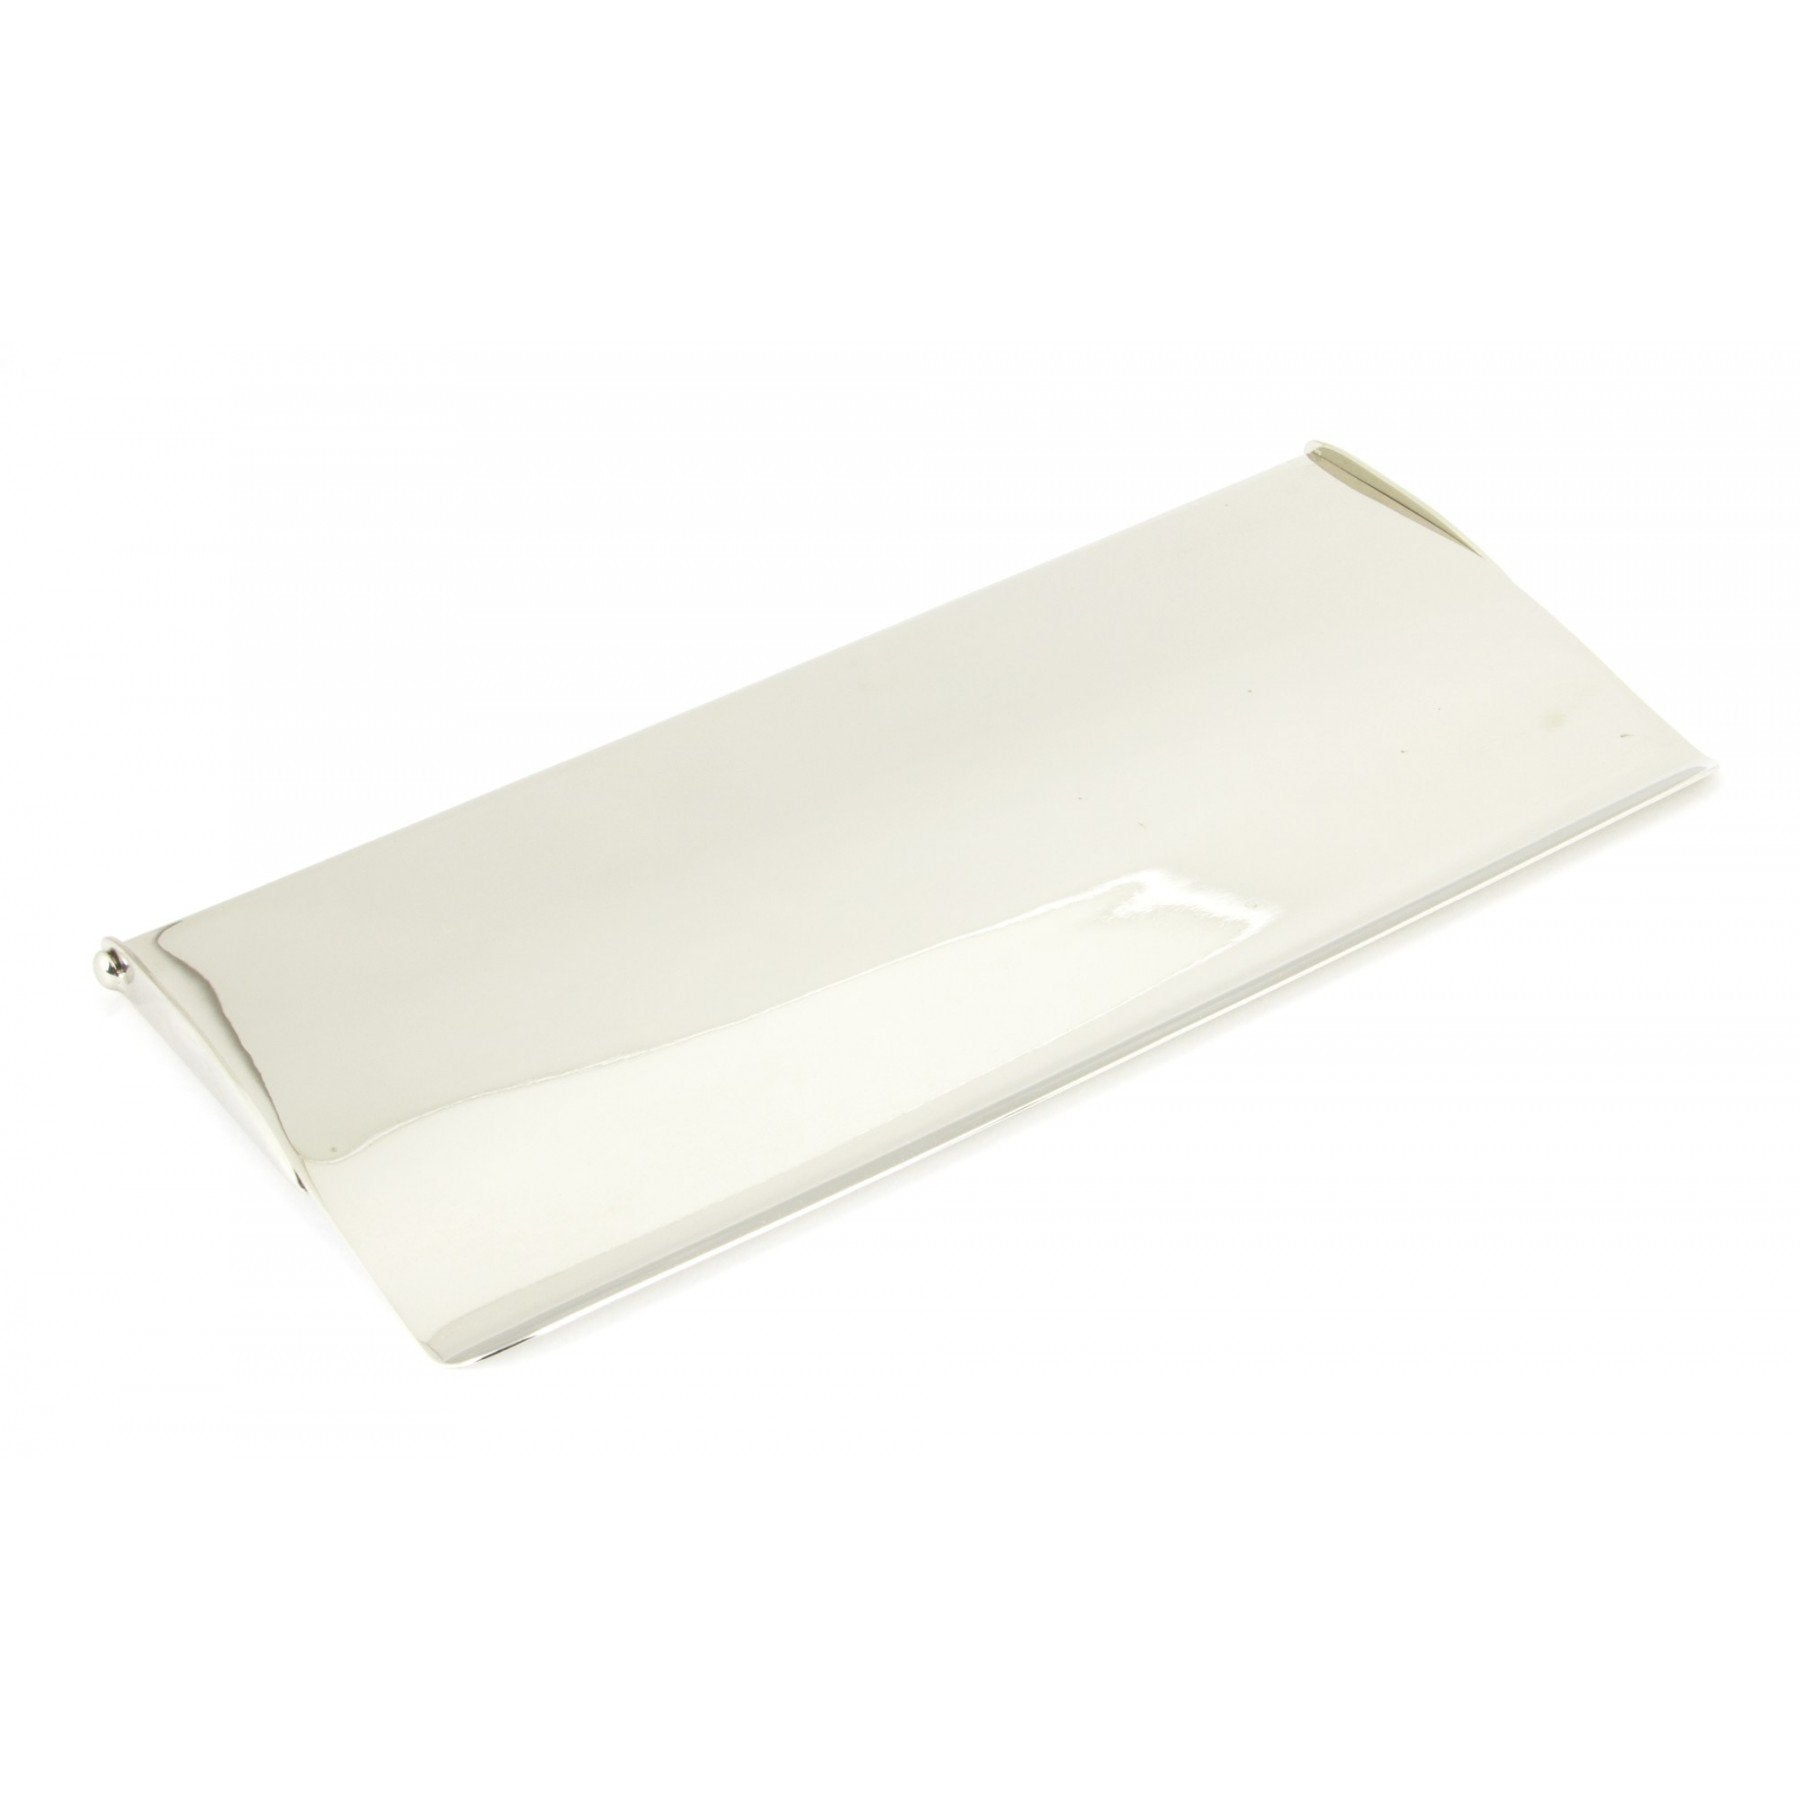 Polished Nickel Small Letterplate Cover - No.42 Interiors